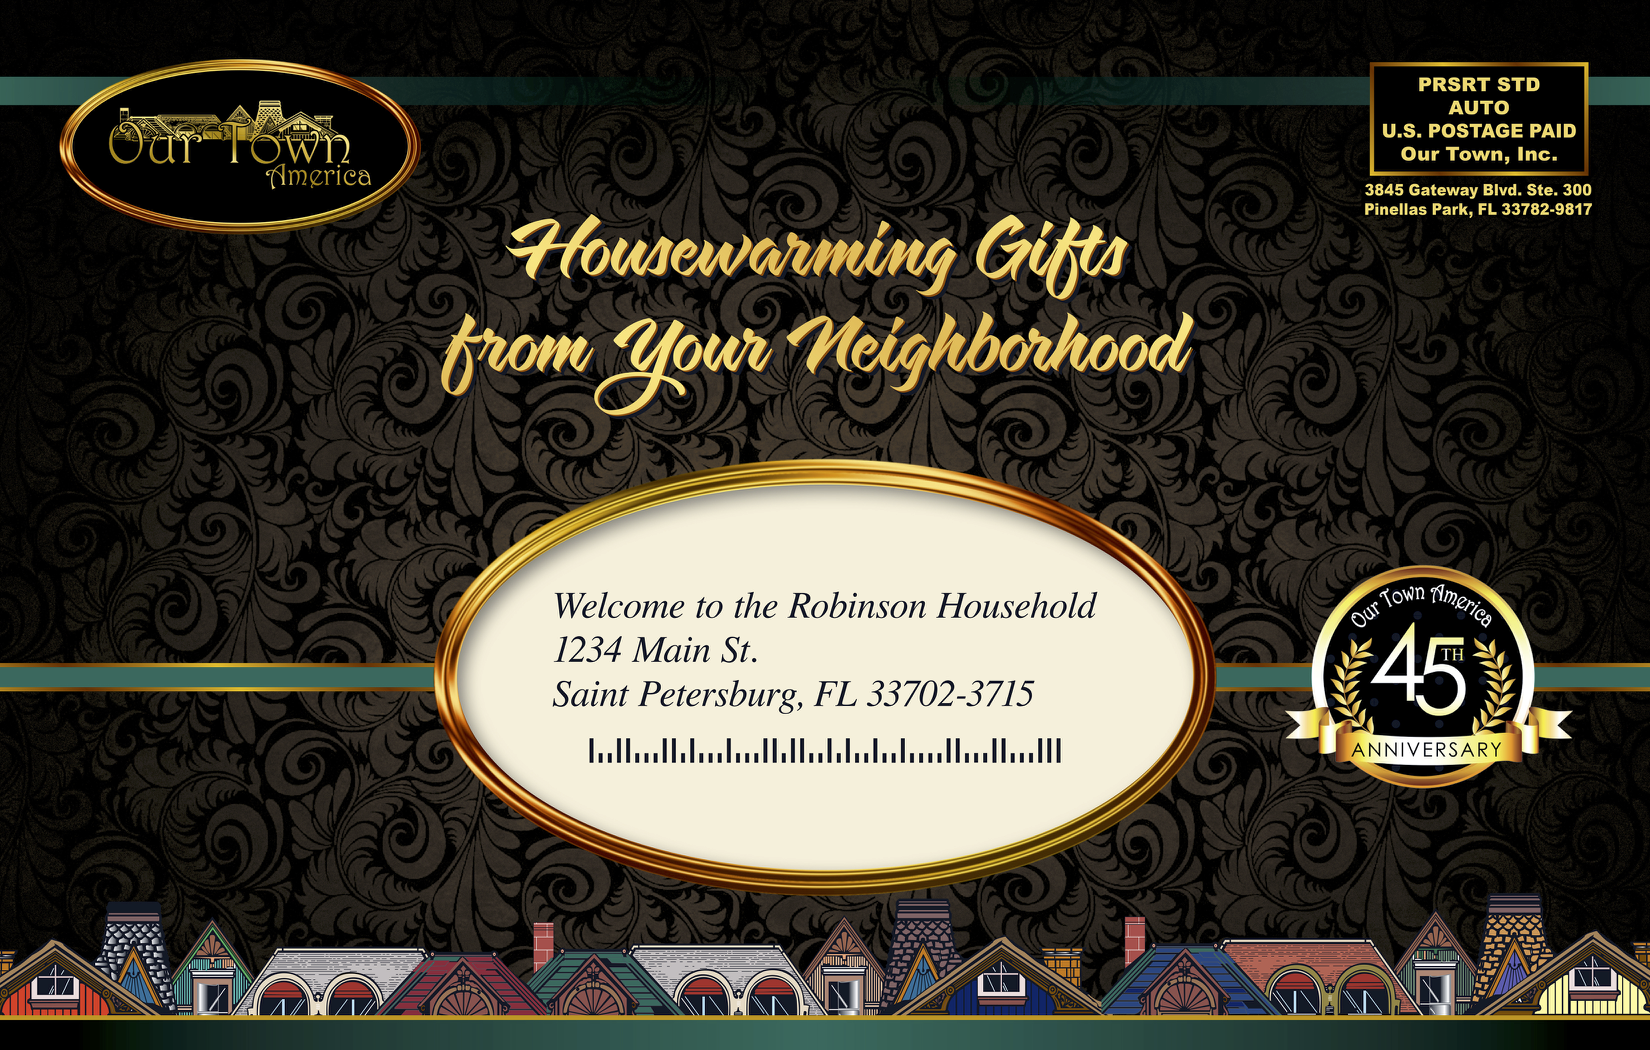 New Mover Welcome Package Housewarming Gifts From Your Neighborhood Our Town America